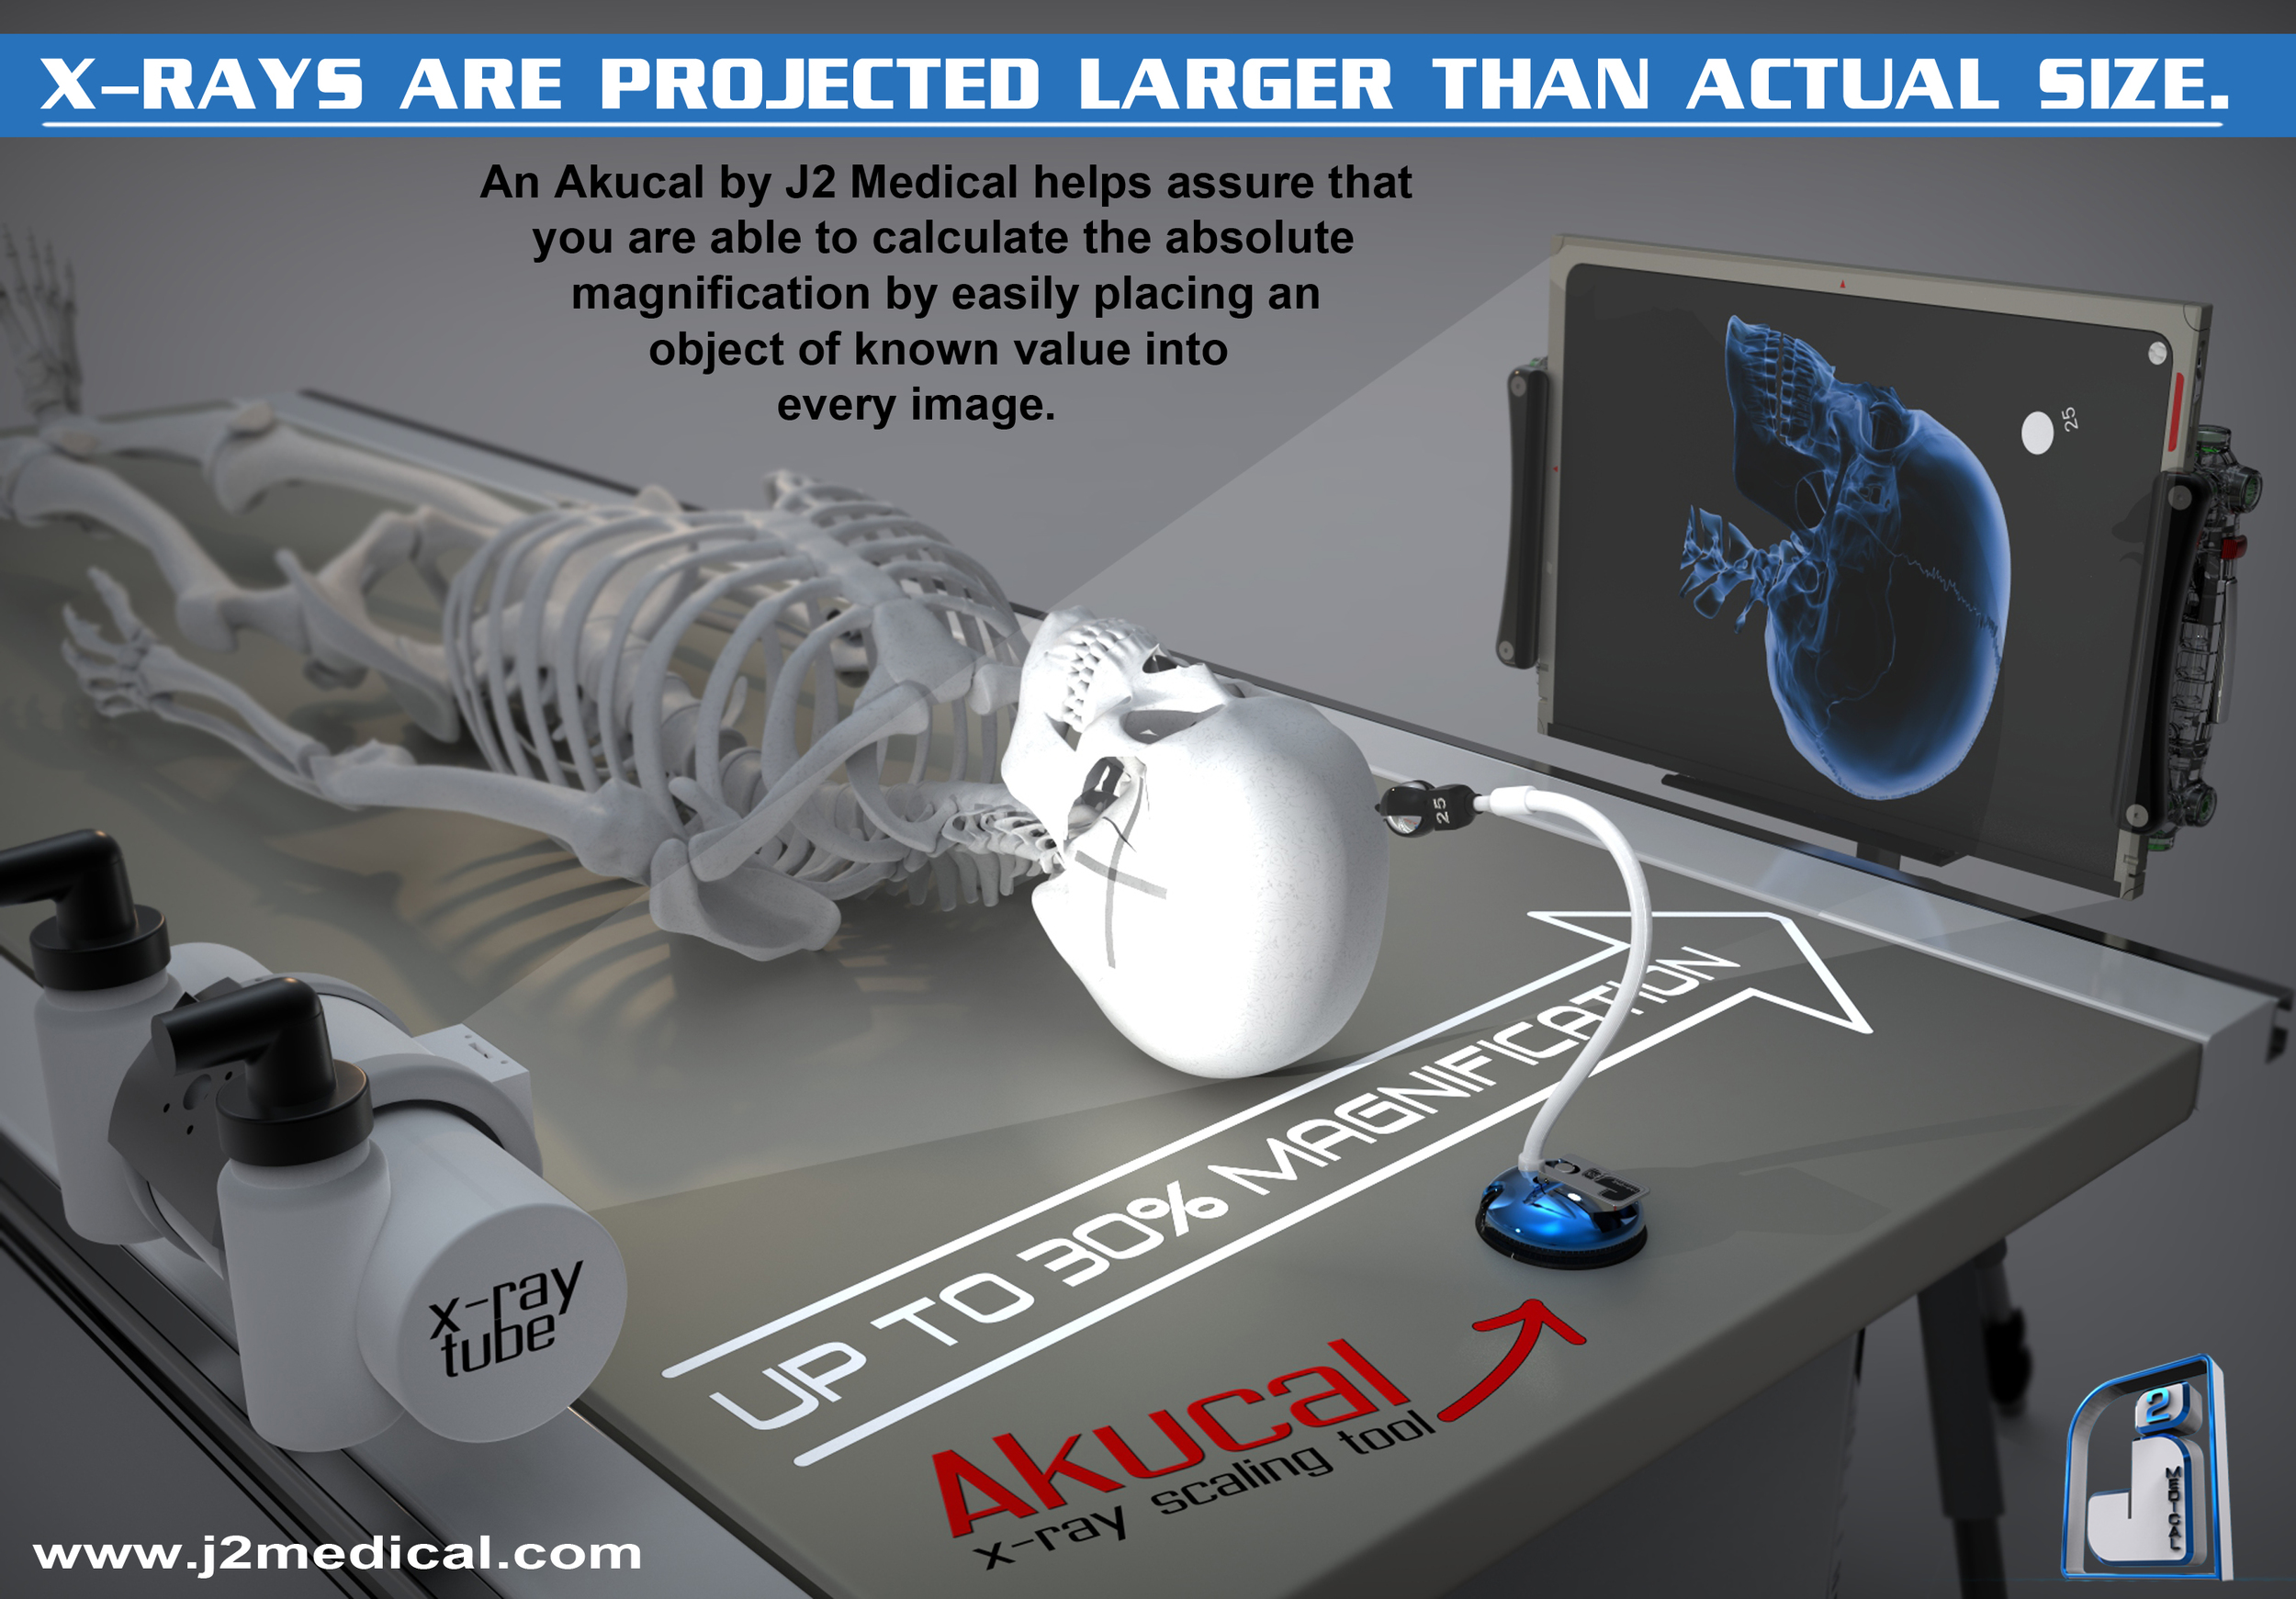 An Akucal by J2 Medical helps assure that you are able to calculate the absolute magnification by easily placing an object of known value into every image.